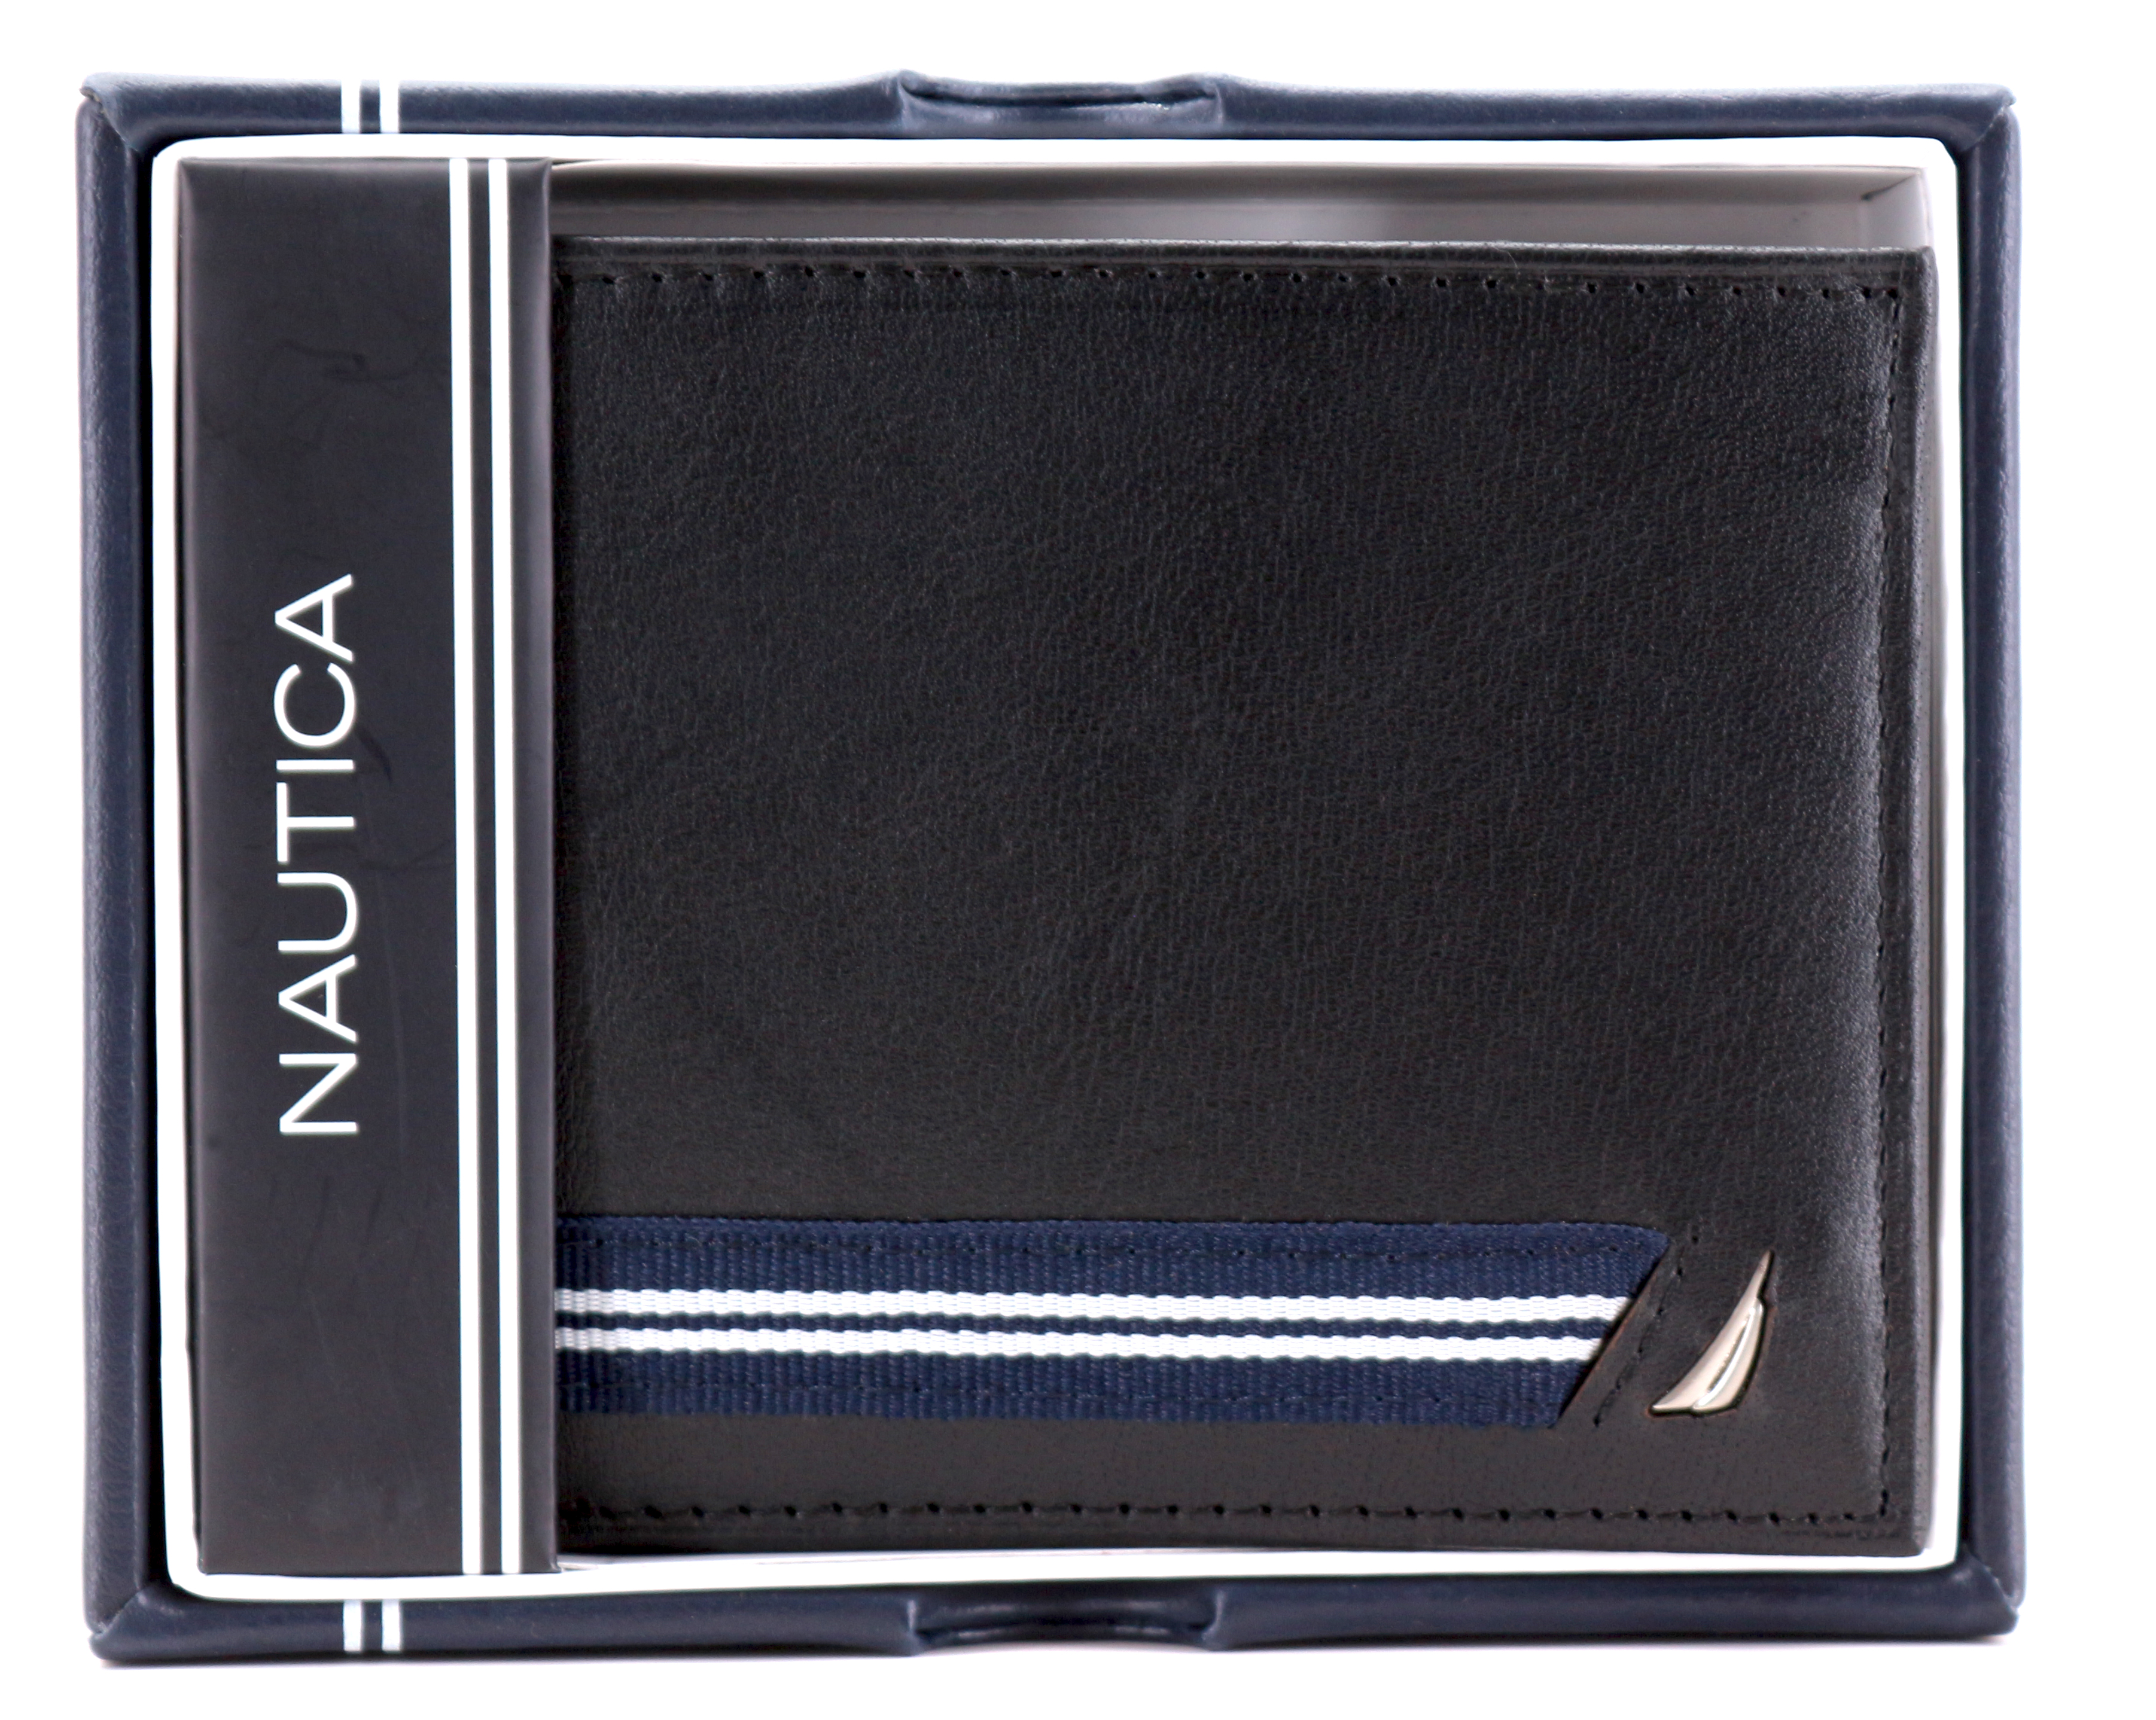 Nautica-Men-039-s-Genuine-Leather-Credit-Card-ID-Double-Billfold-Passcase-Wallet thumbnail 11